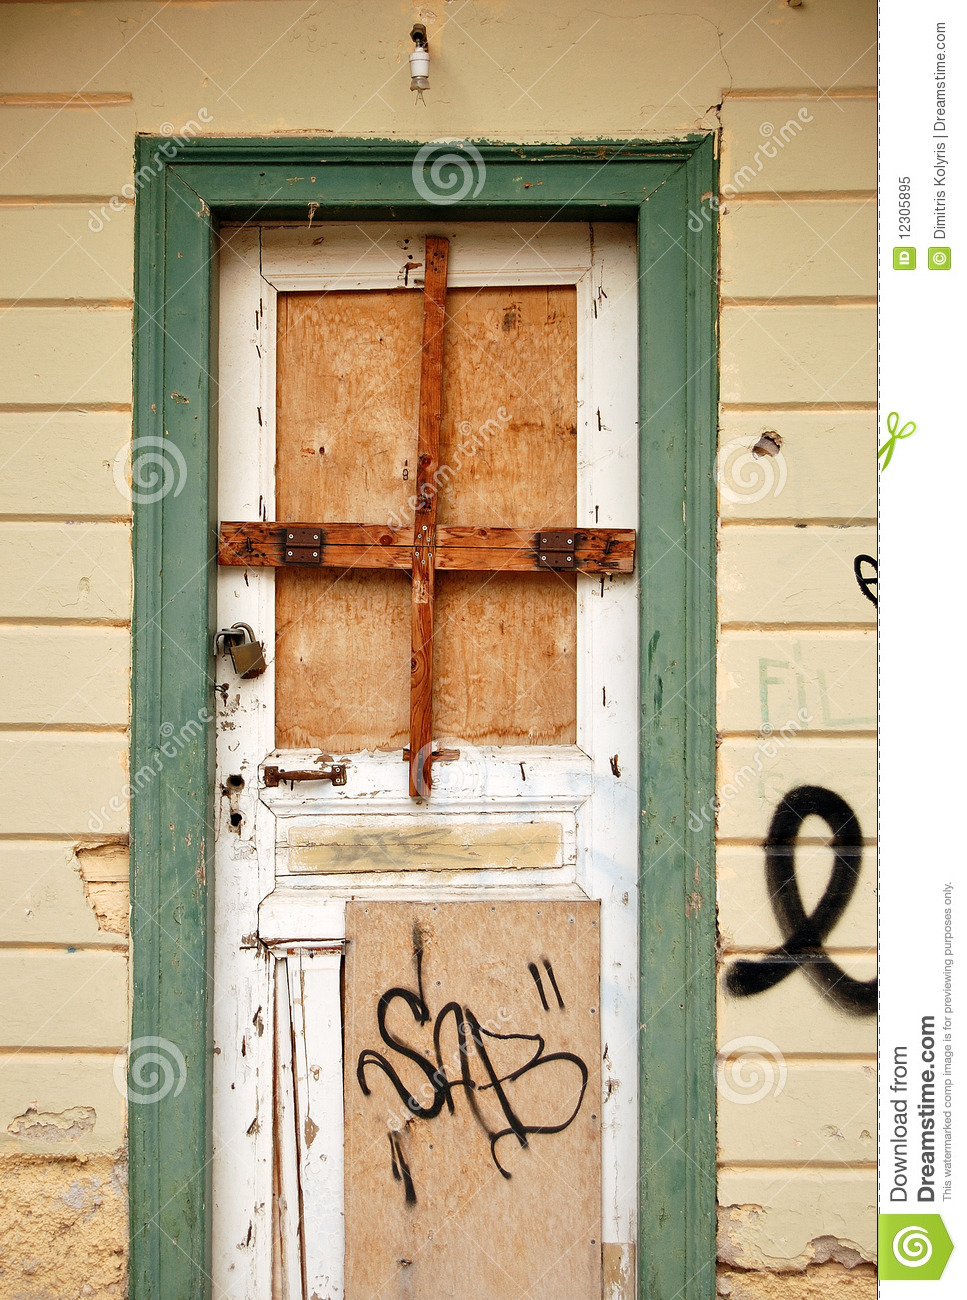 Boarded Up Door Royalty Free Stock Photo Image 12305895